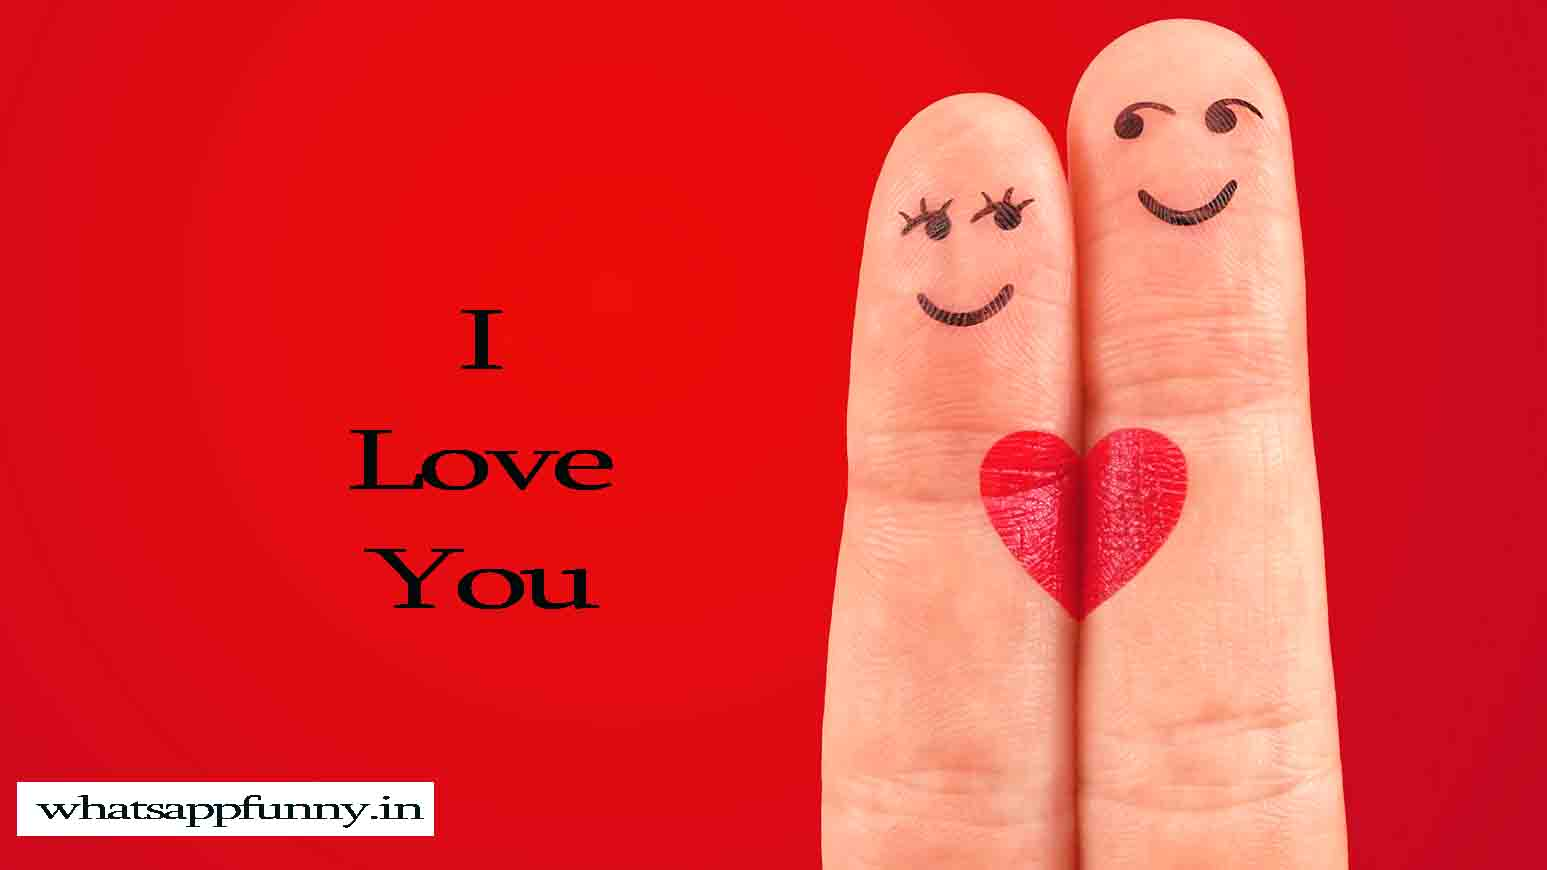 i love you fingers images hd download